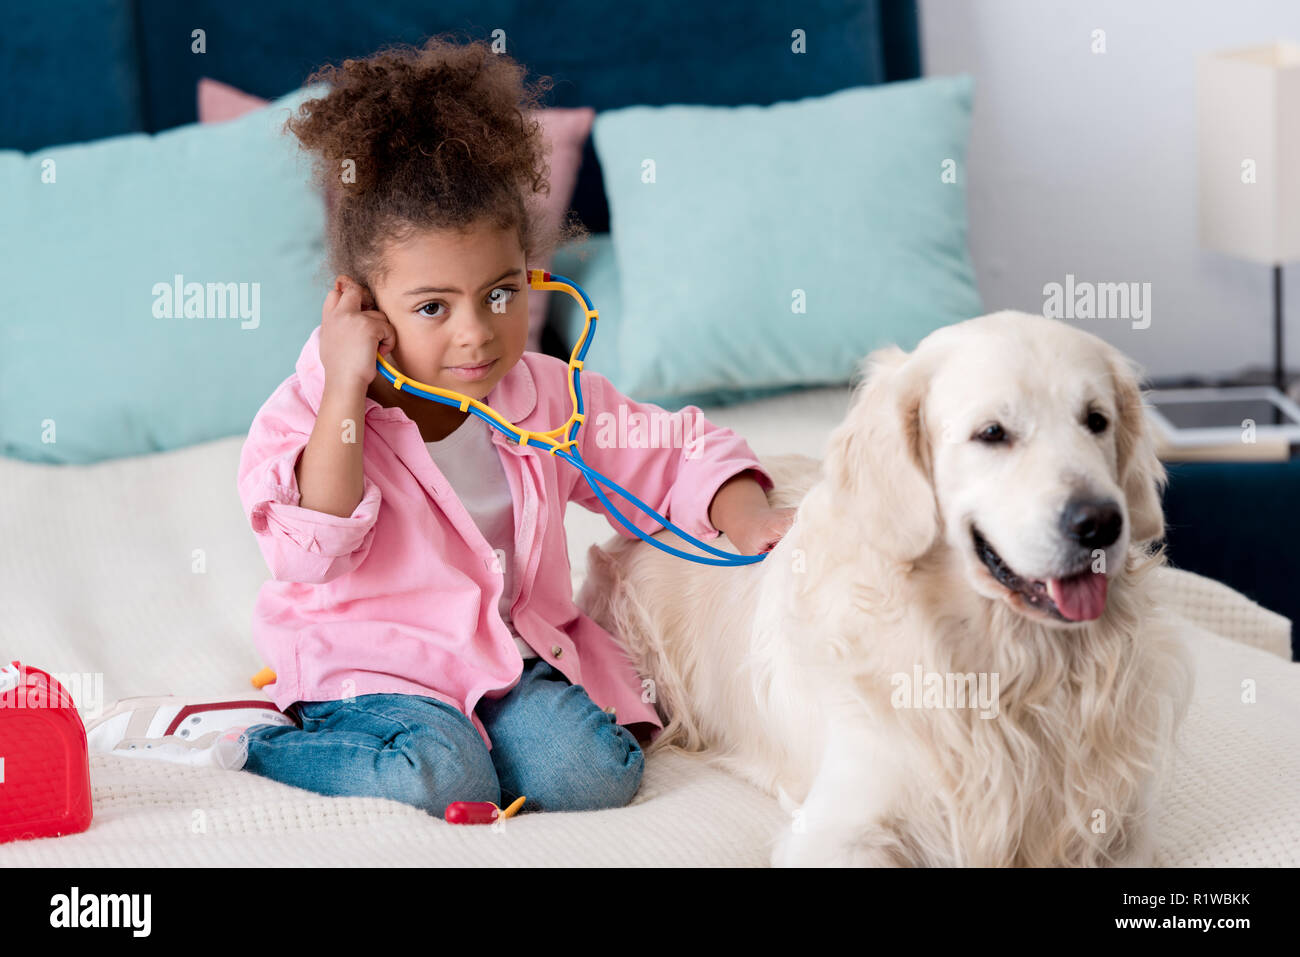 Adorable african american child playing with stethoscope and retriever - Stock Image